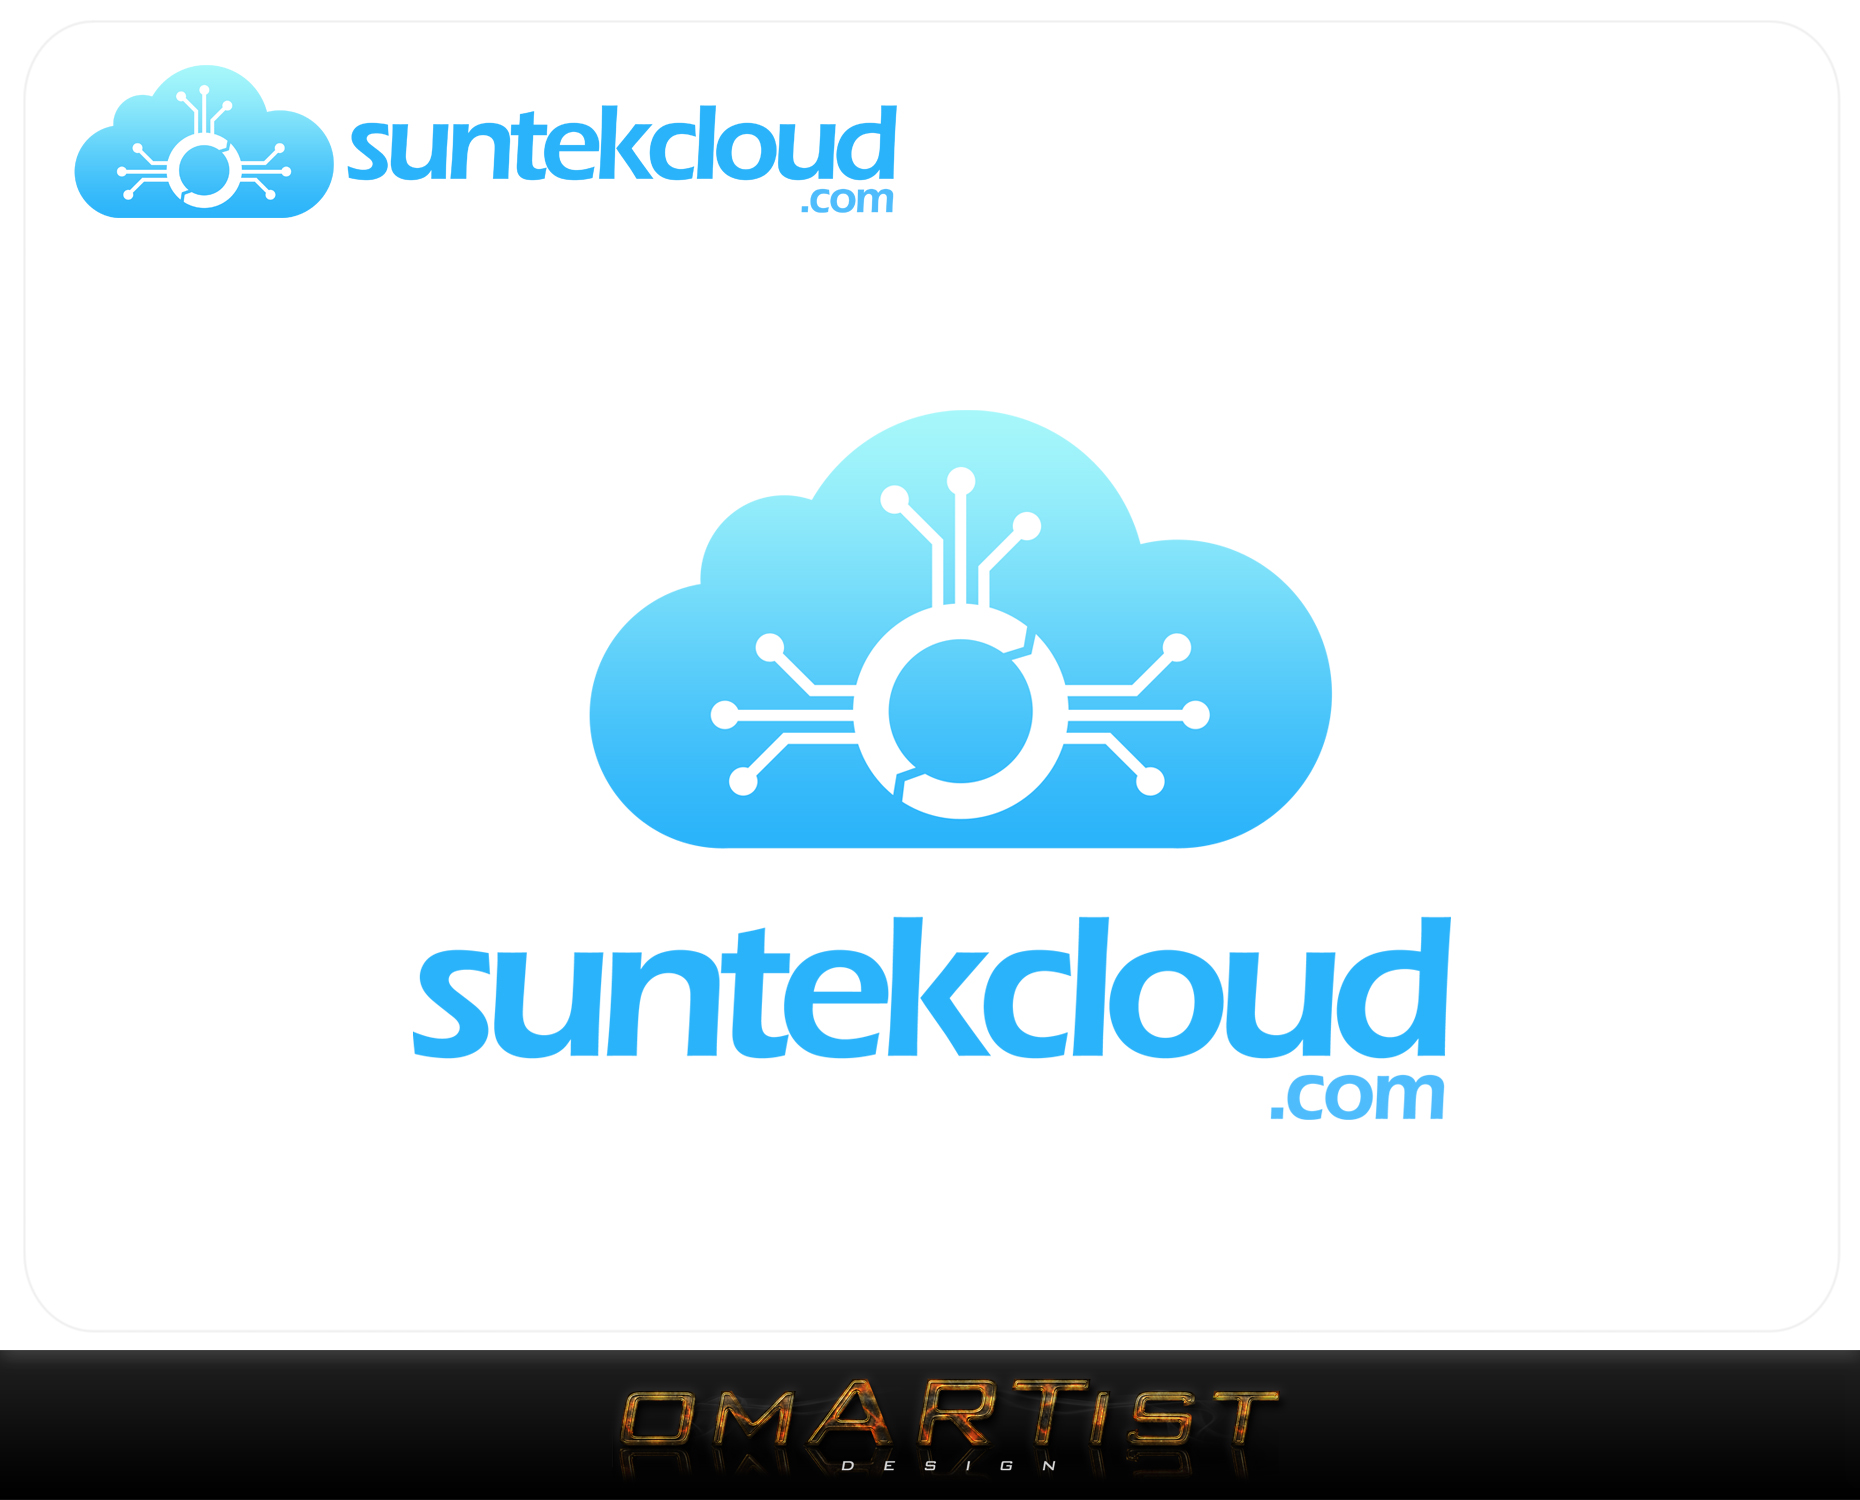 Logo Design by omARTist - Entry No. 114 in the Logo Design Contest Imaginative Logo Design for suntekcloud.com.